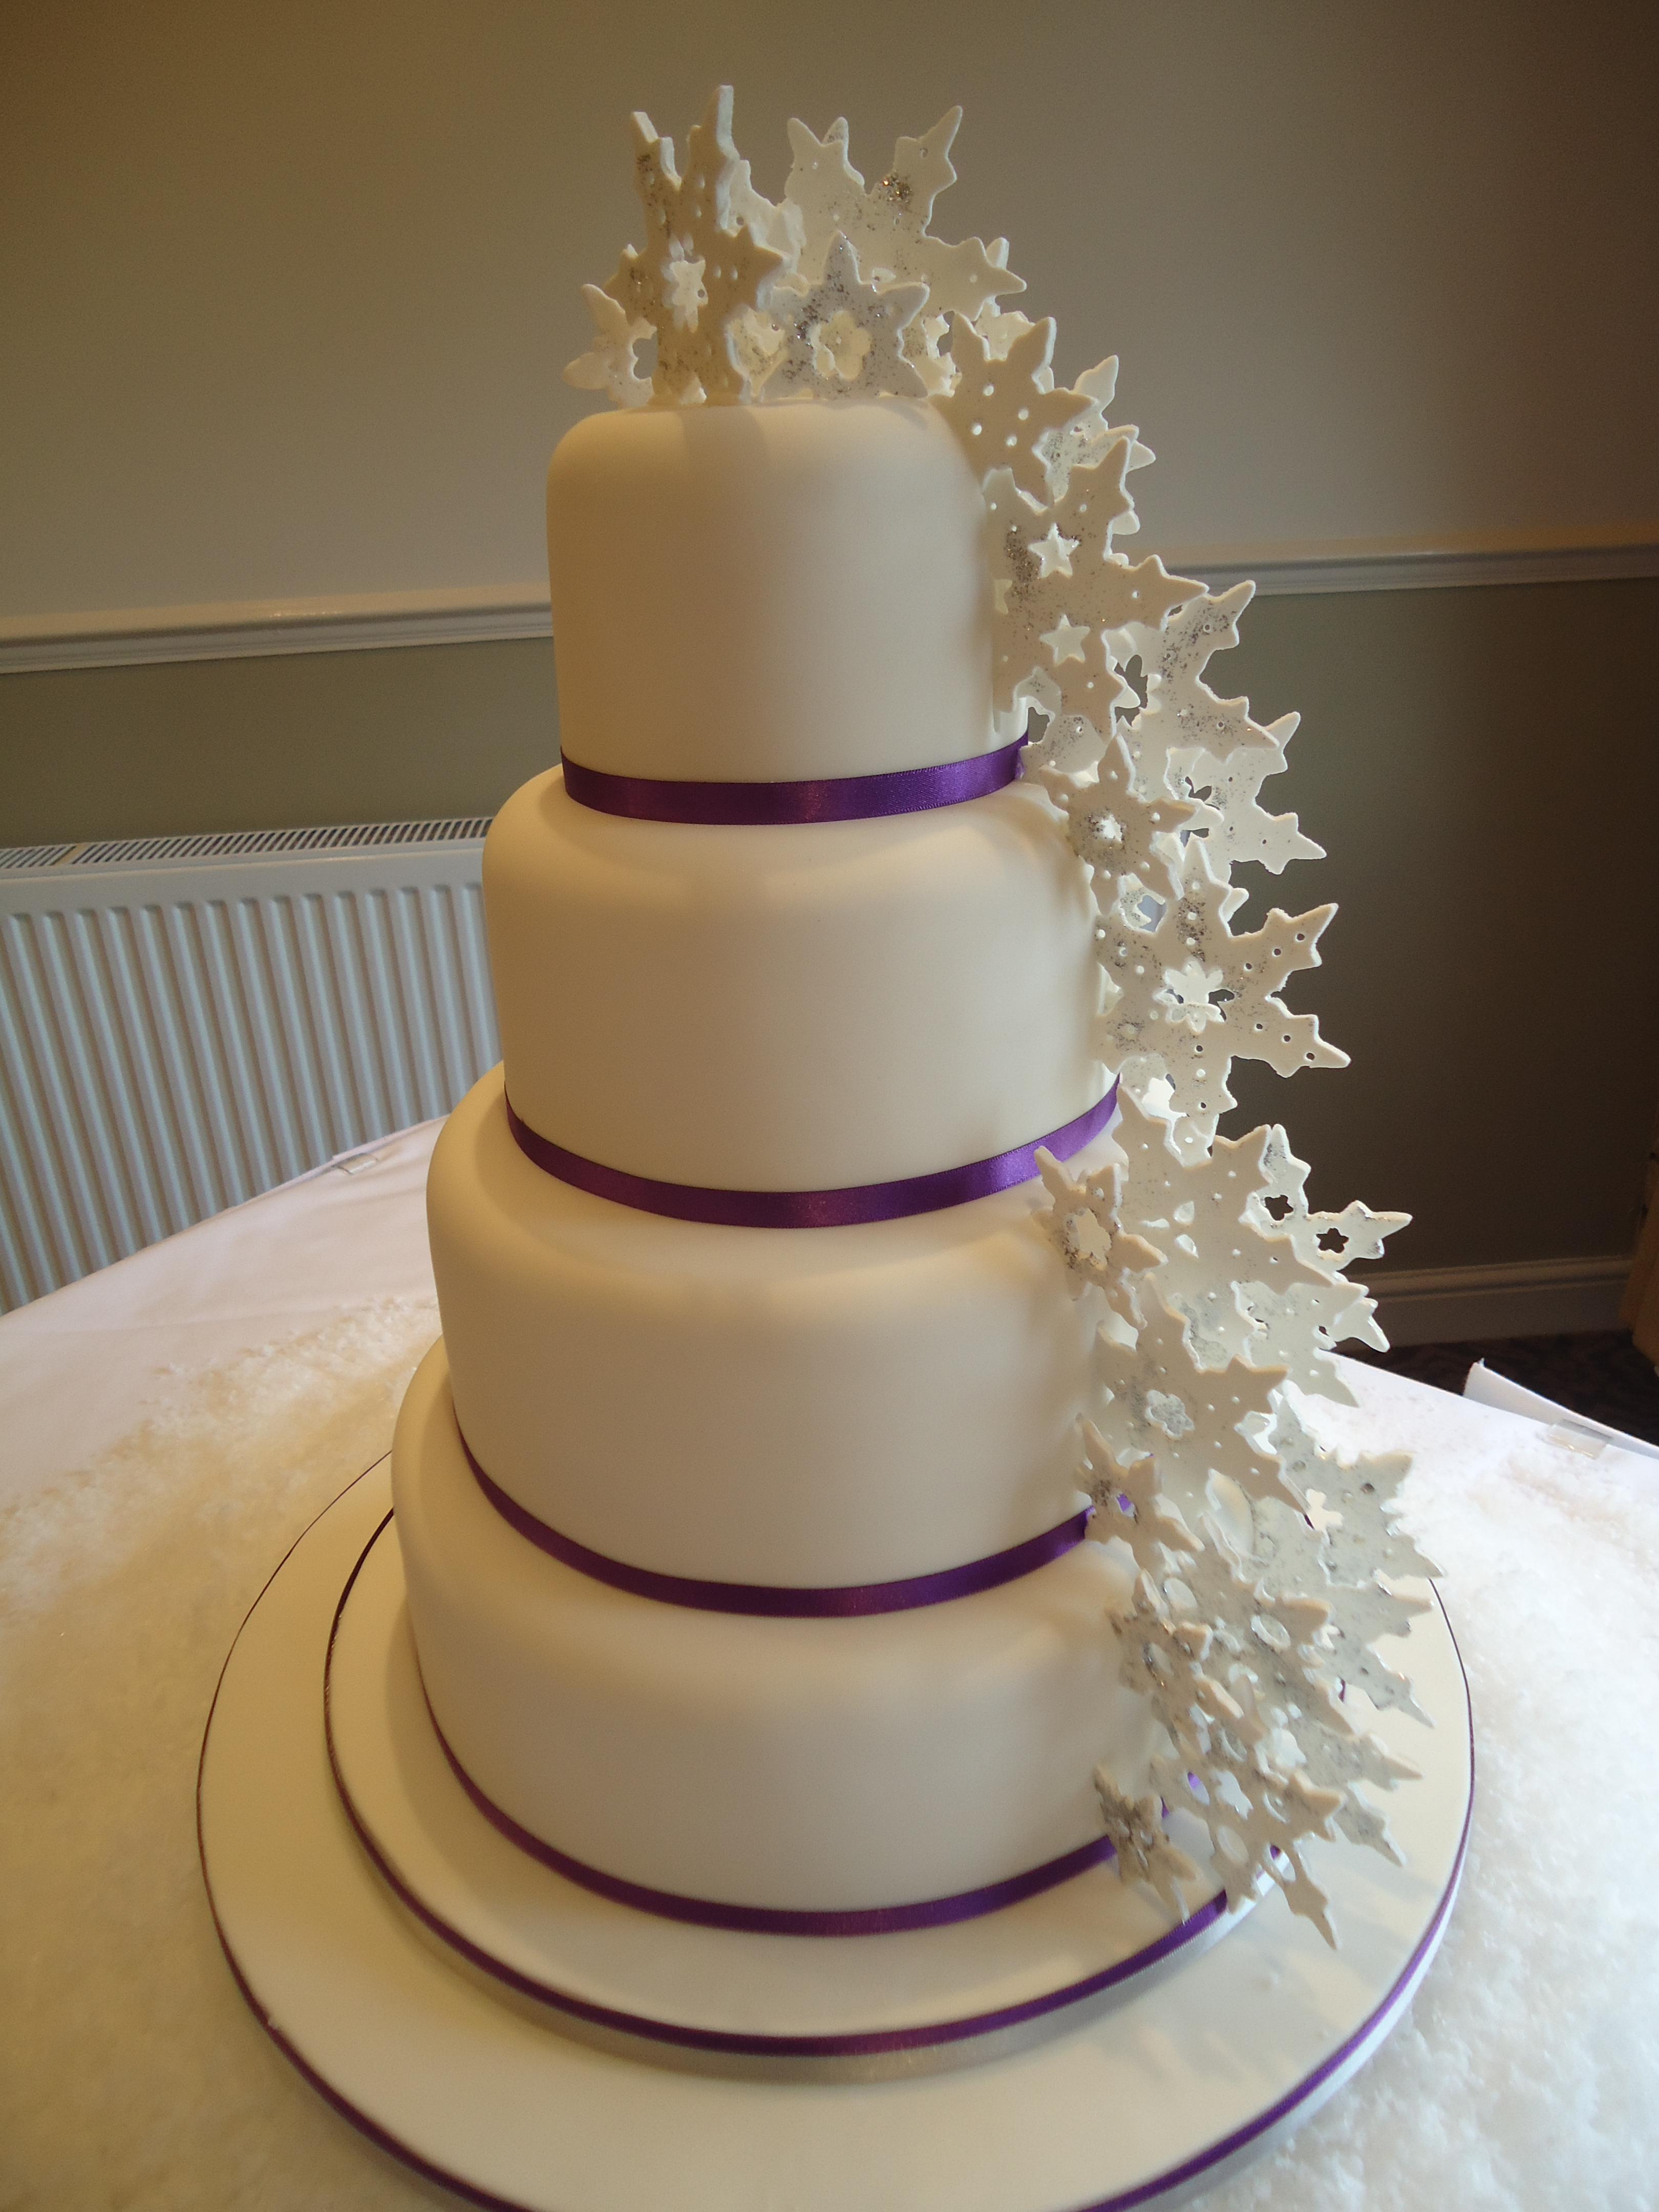 CCD Have Been None Stop This Week With Consultations Christmas Markets Birthday And Wedding Cakes Still Tomorrow To Look Forward A The